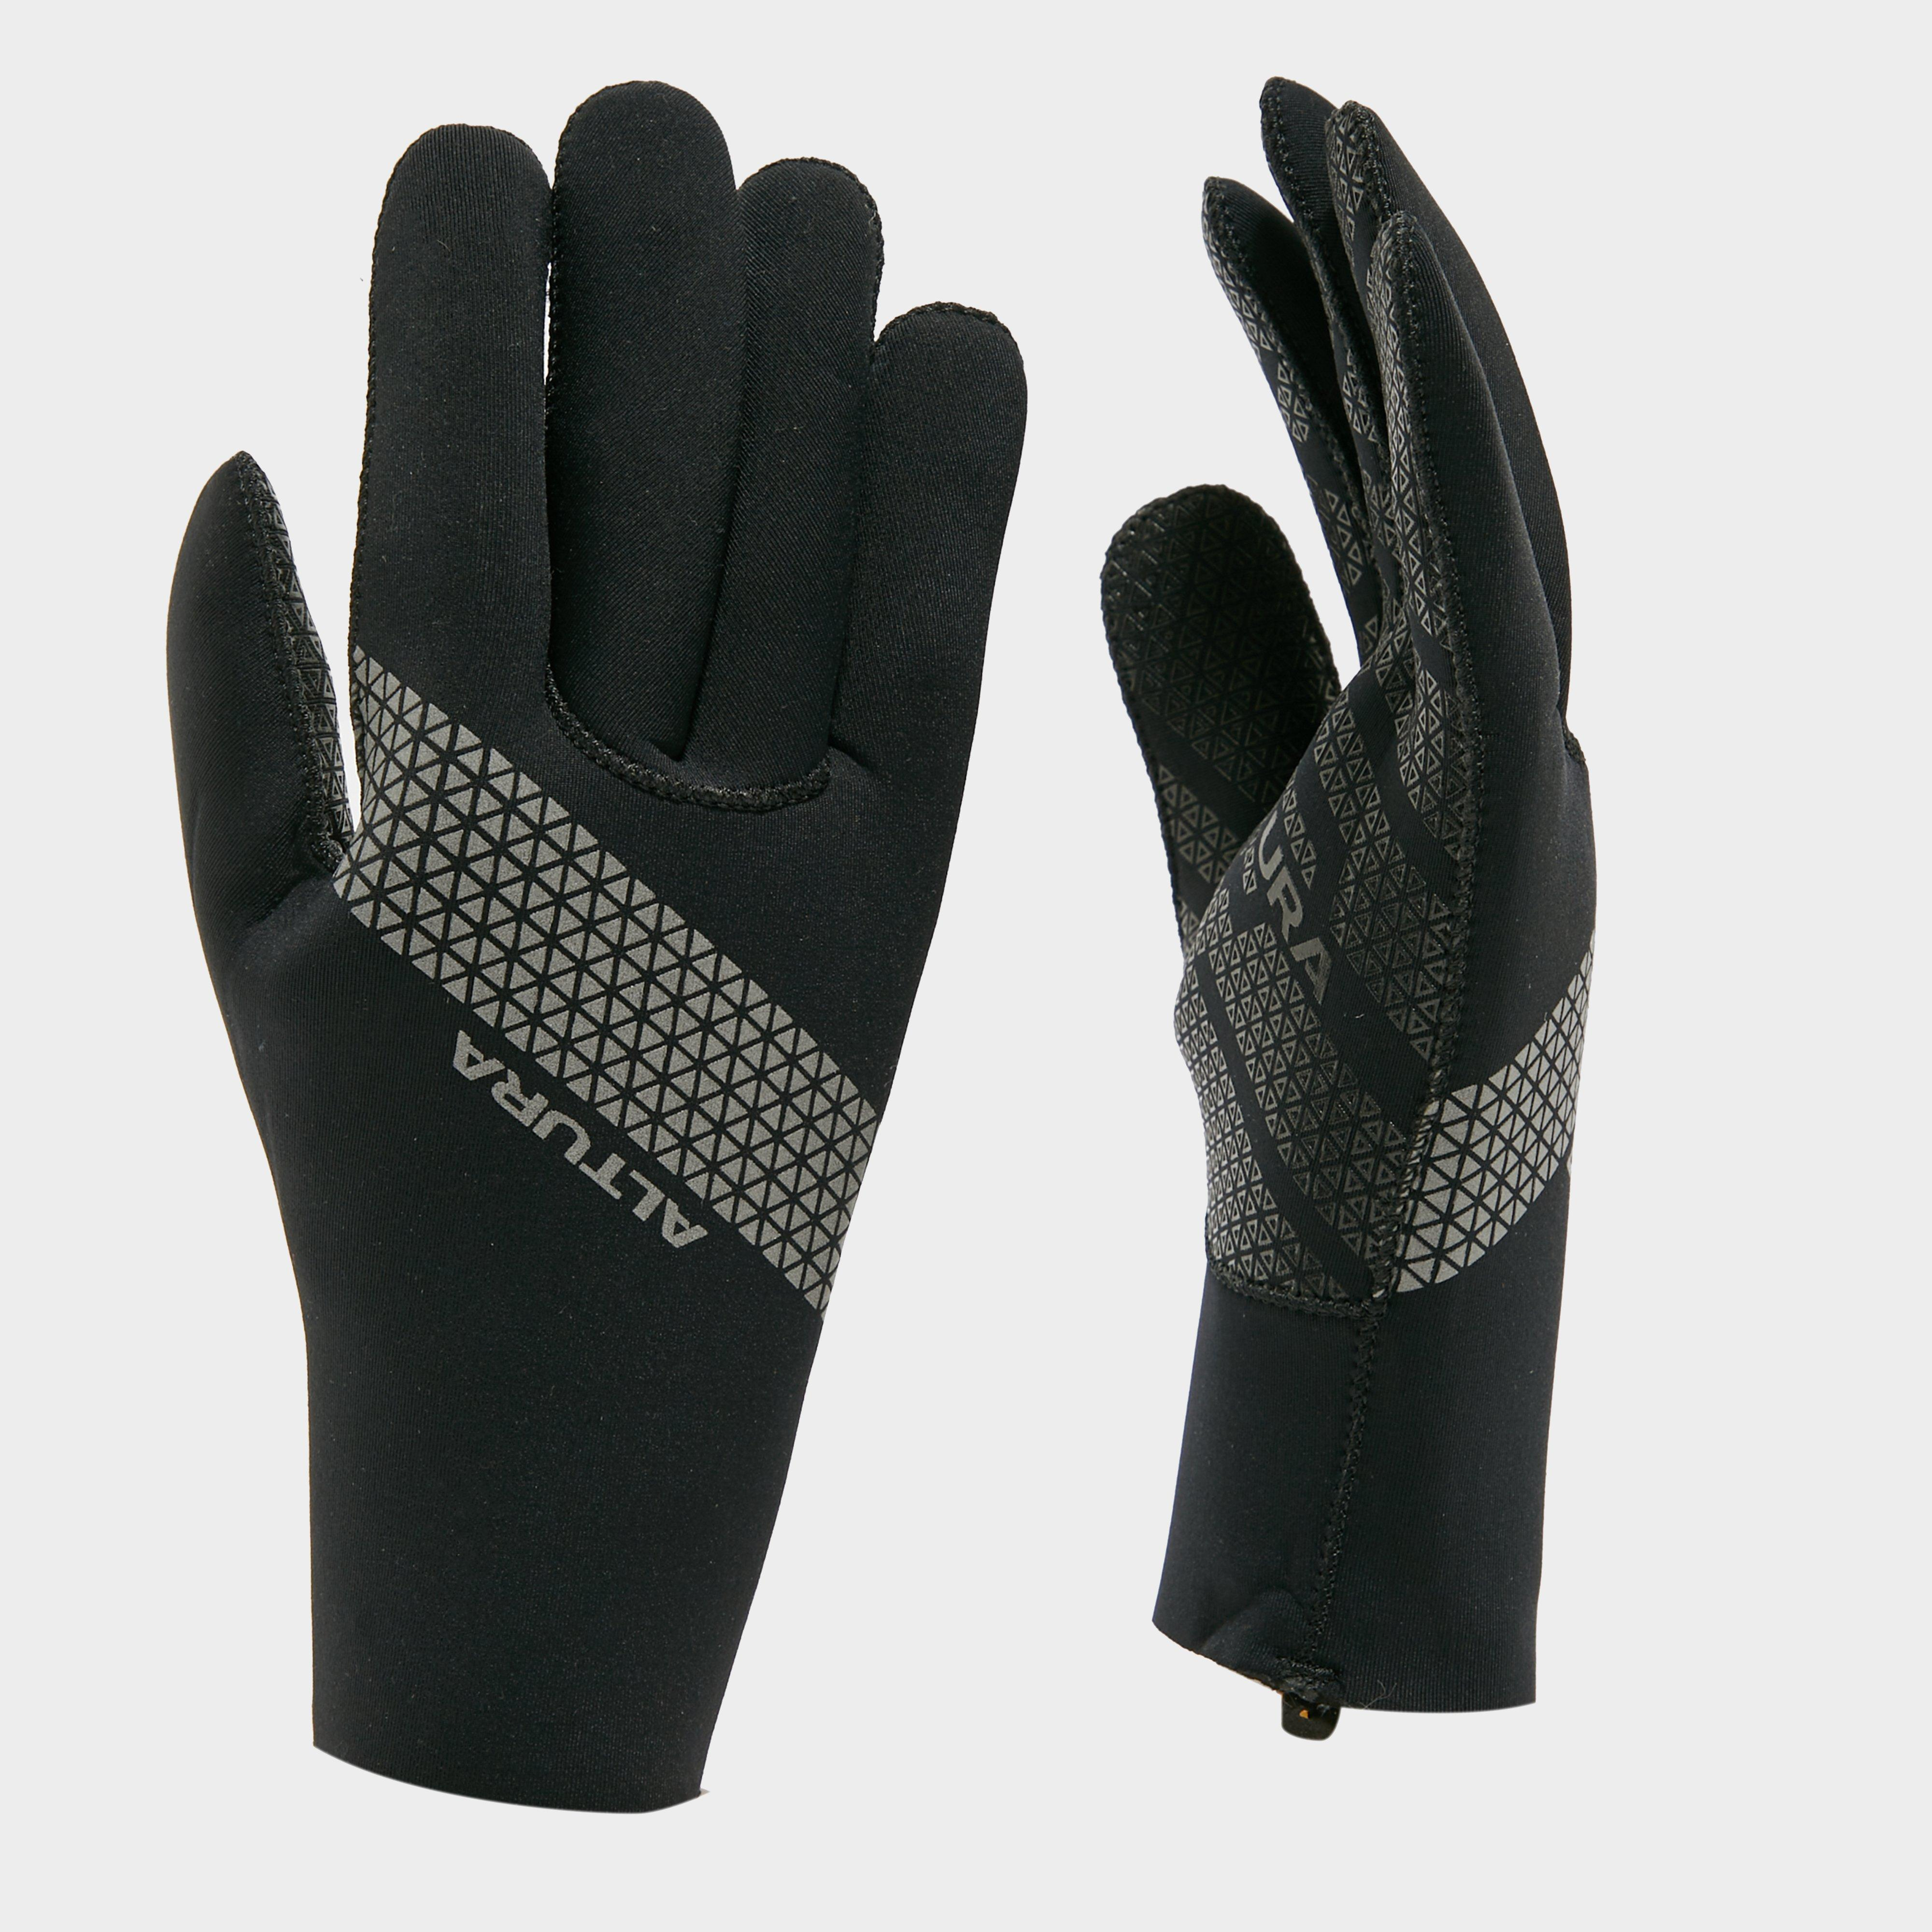 Altura Altura Thermostretch 3 Neoprene Windproof Cycling Gloves